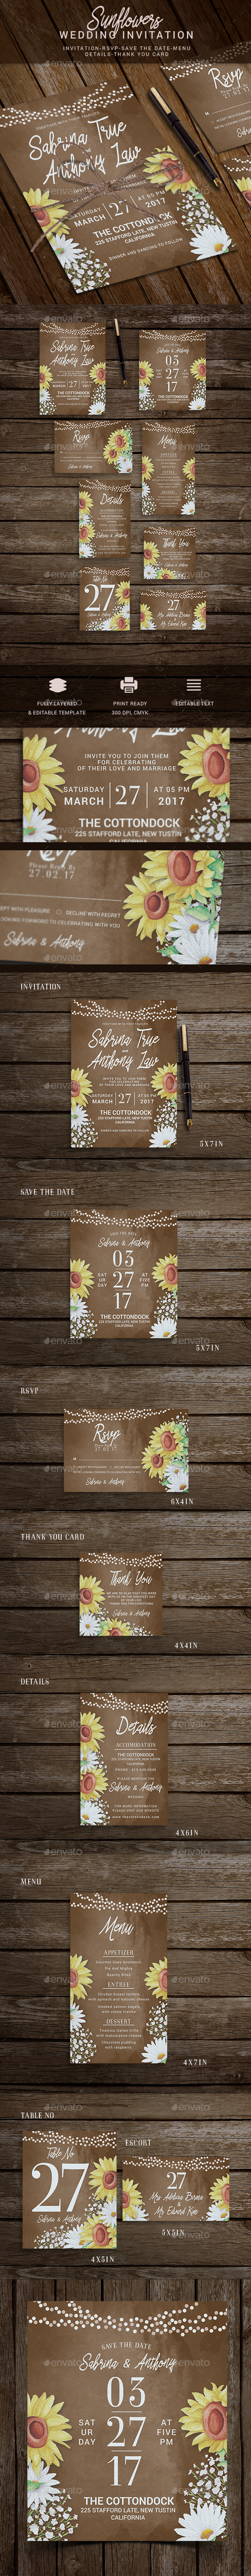 Rustic Wedding Invitation - Invitations Cards & Invites